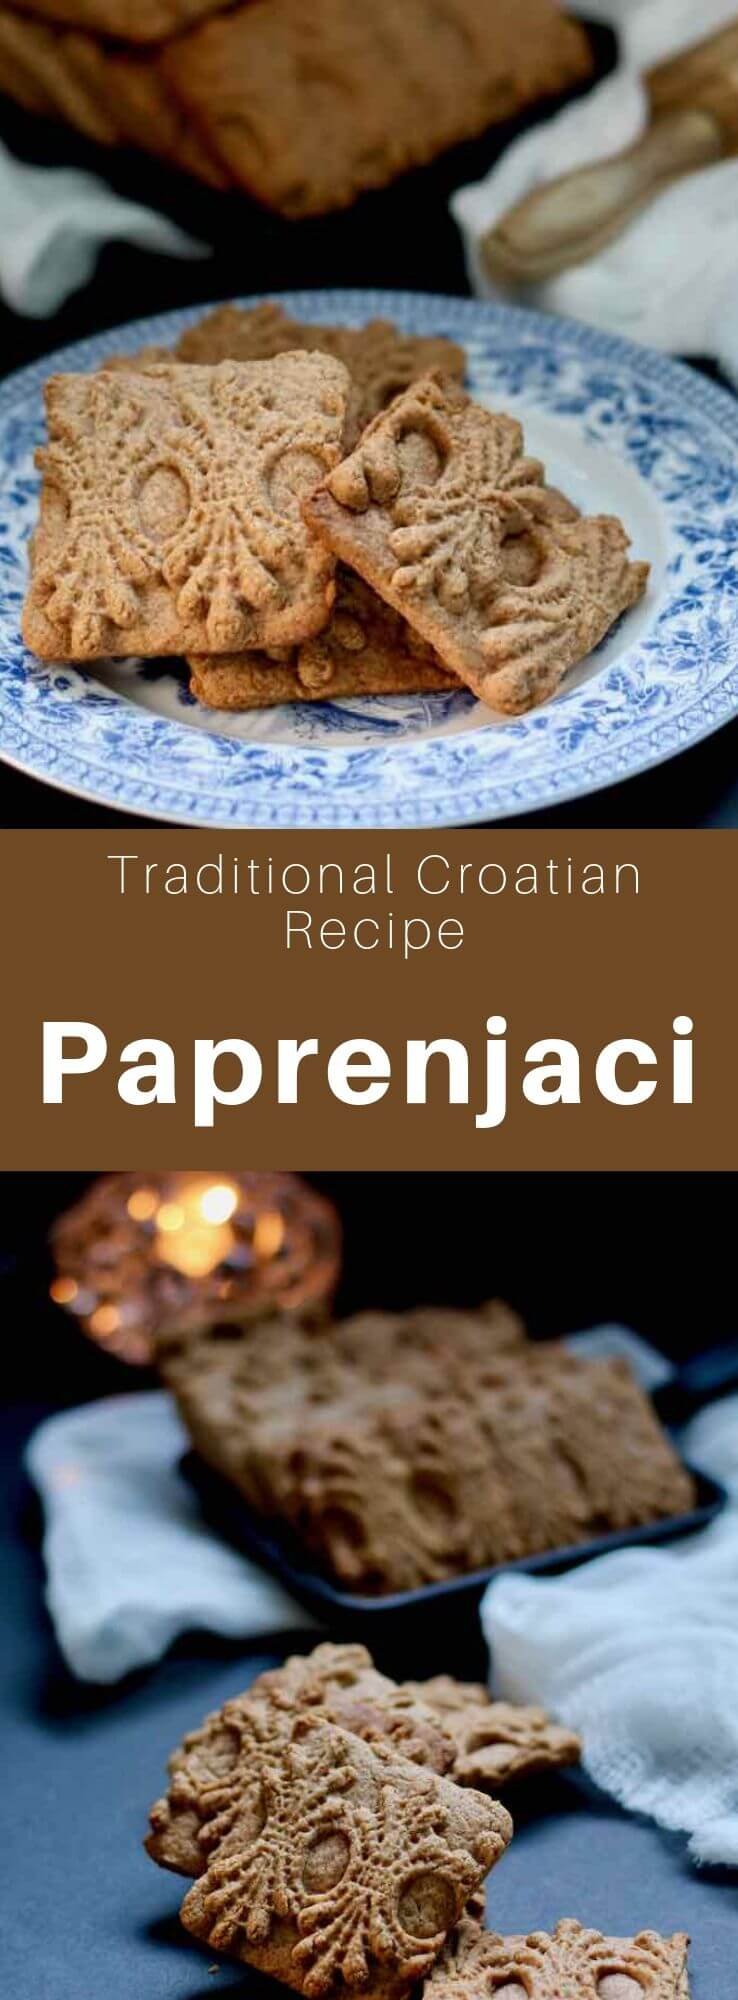 Paprenjaci (singular paprenjak) are traditional biscuits of Croatian origin hat are flavored with honey and black pepper. #Croatia #CroatianRecipe #CroatianCuisine #Balkans #WorldCuisine #196flavors